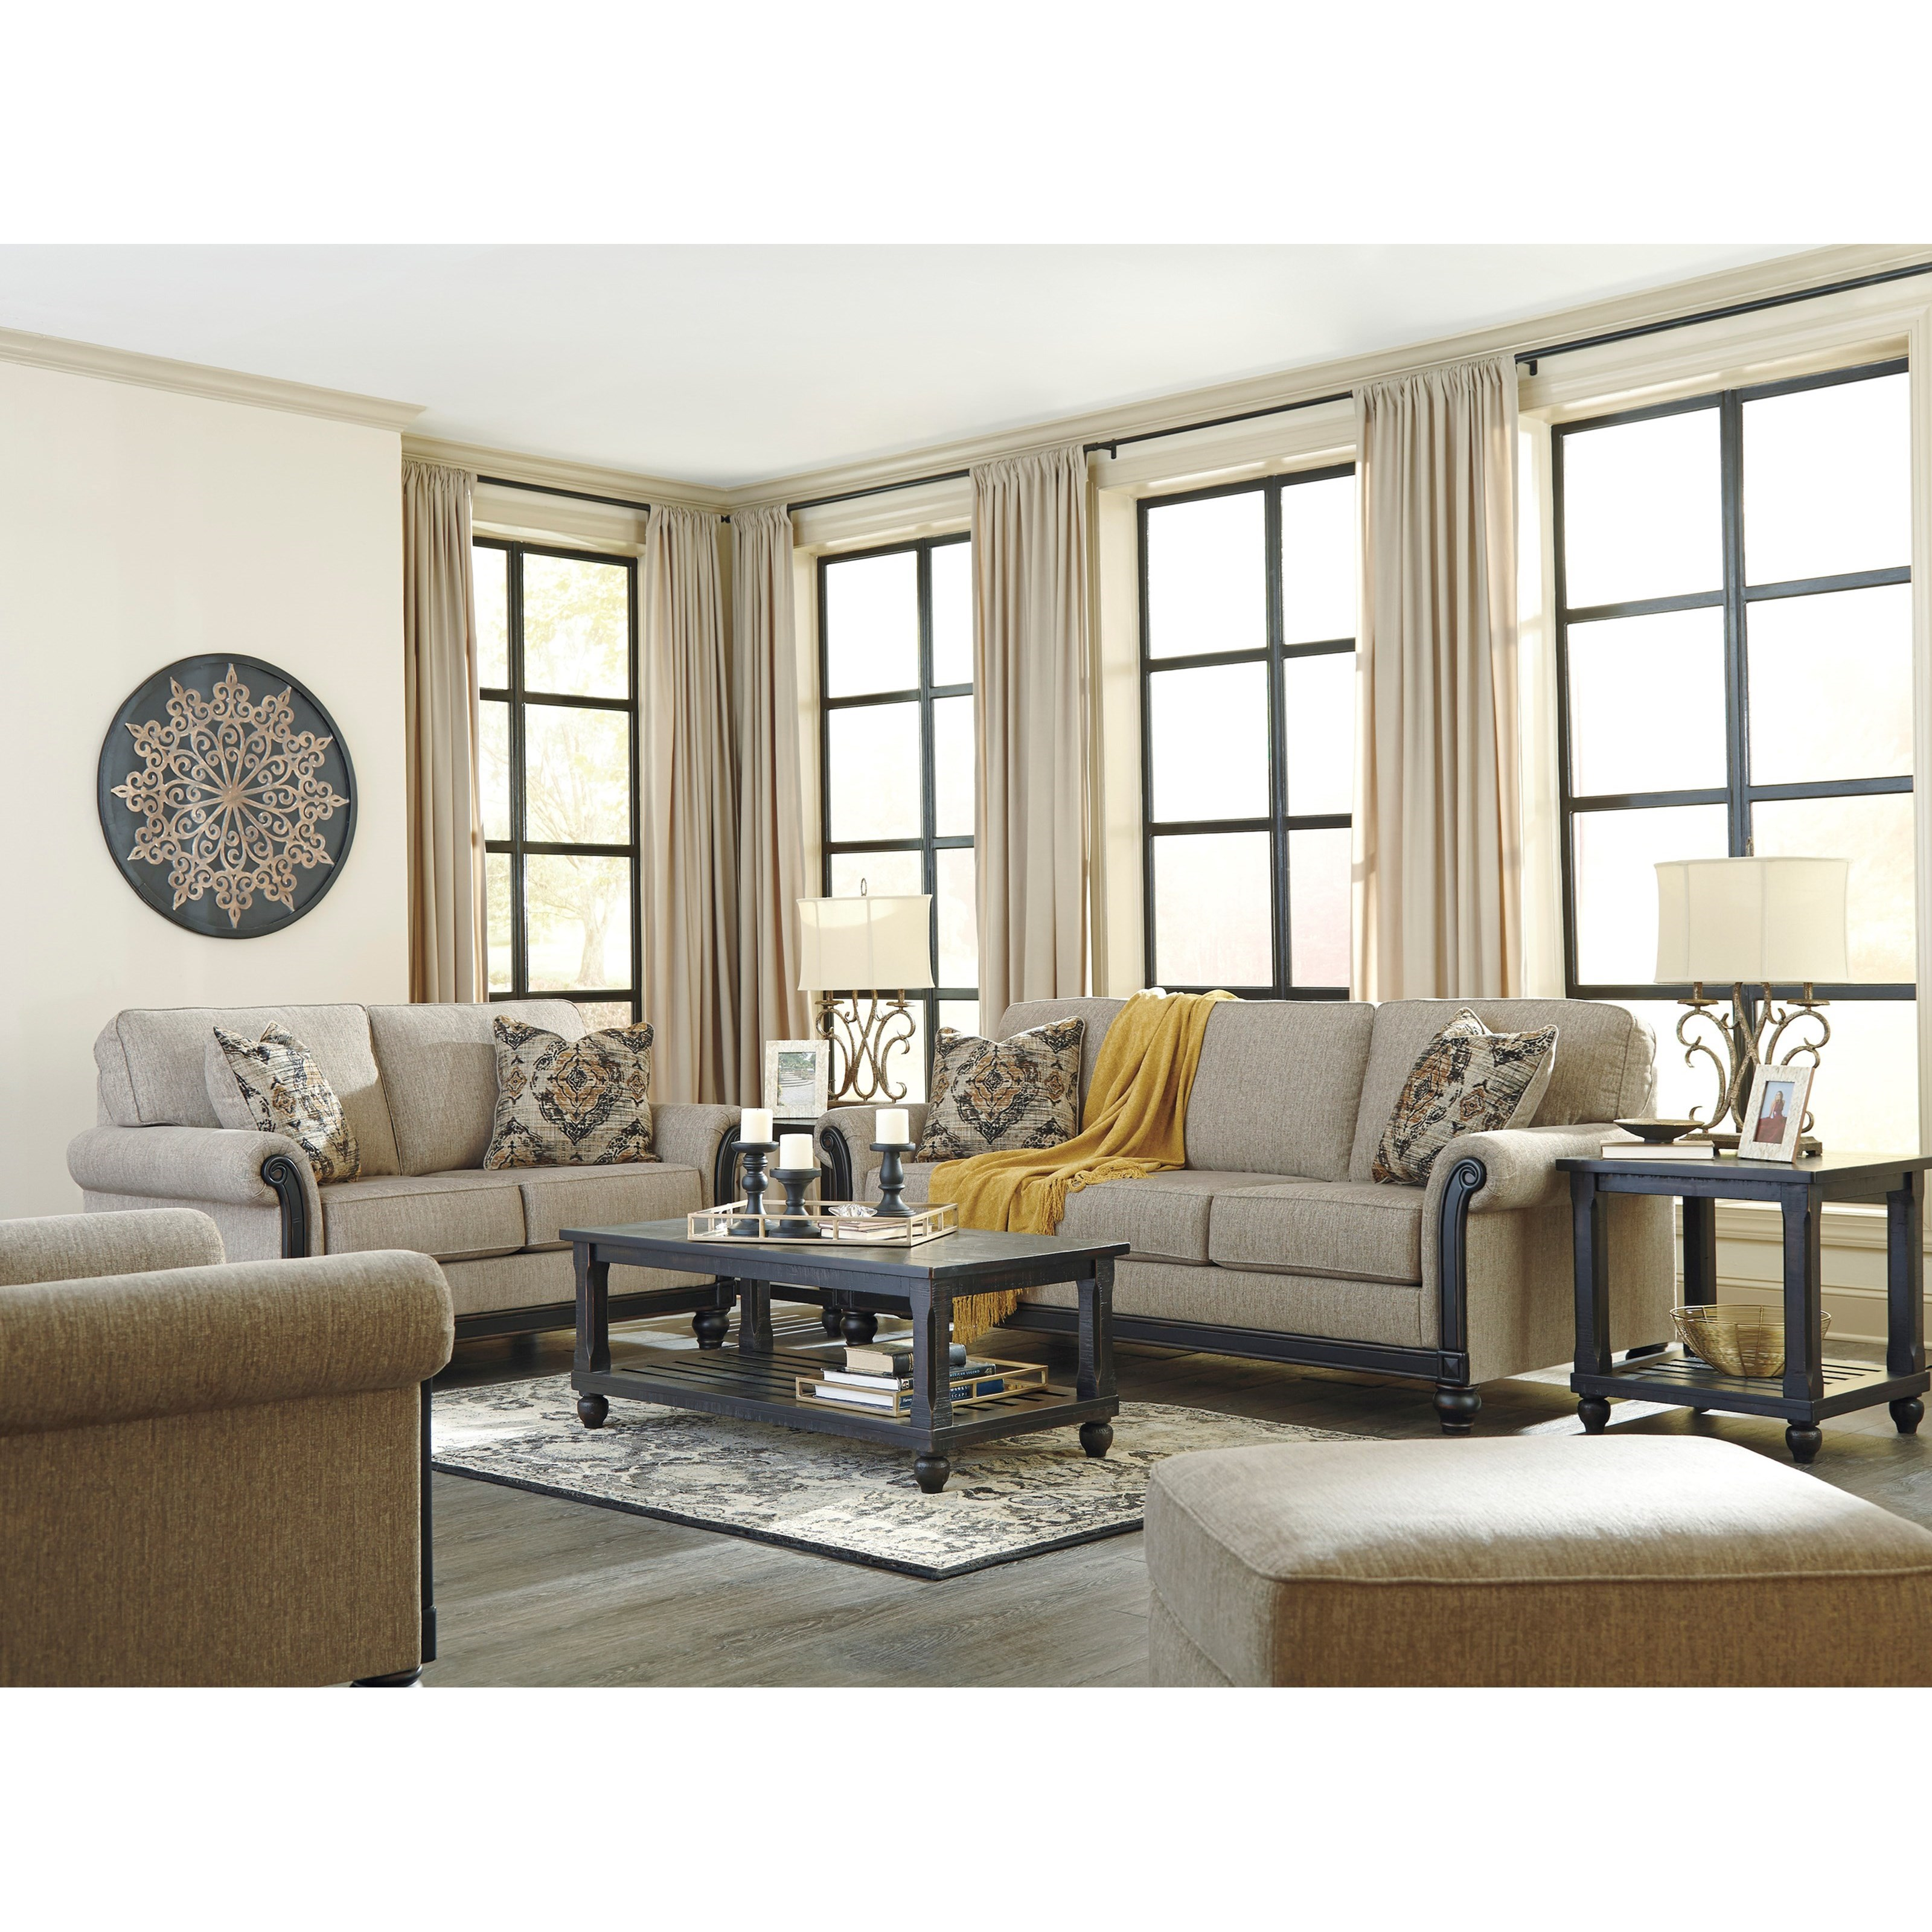 Signature Design By Ashley Blackwood Stationary Living Room Group Furniture Superstore Nm